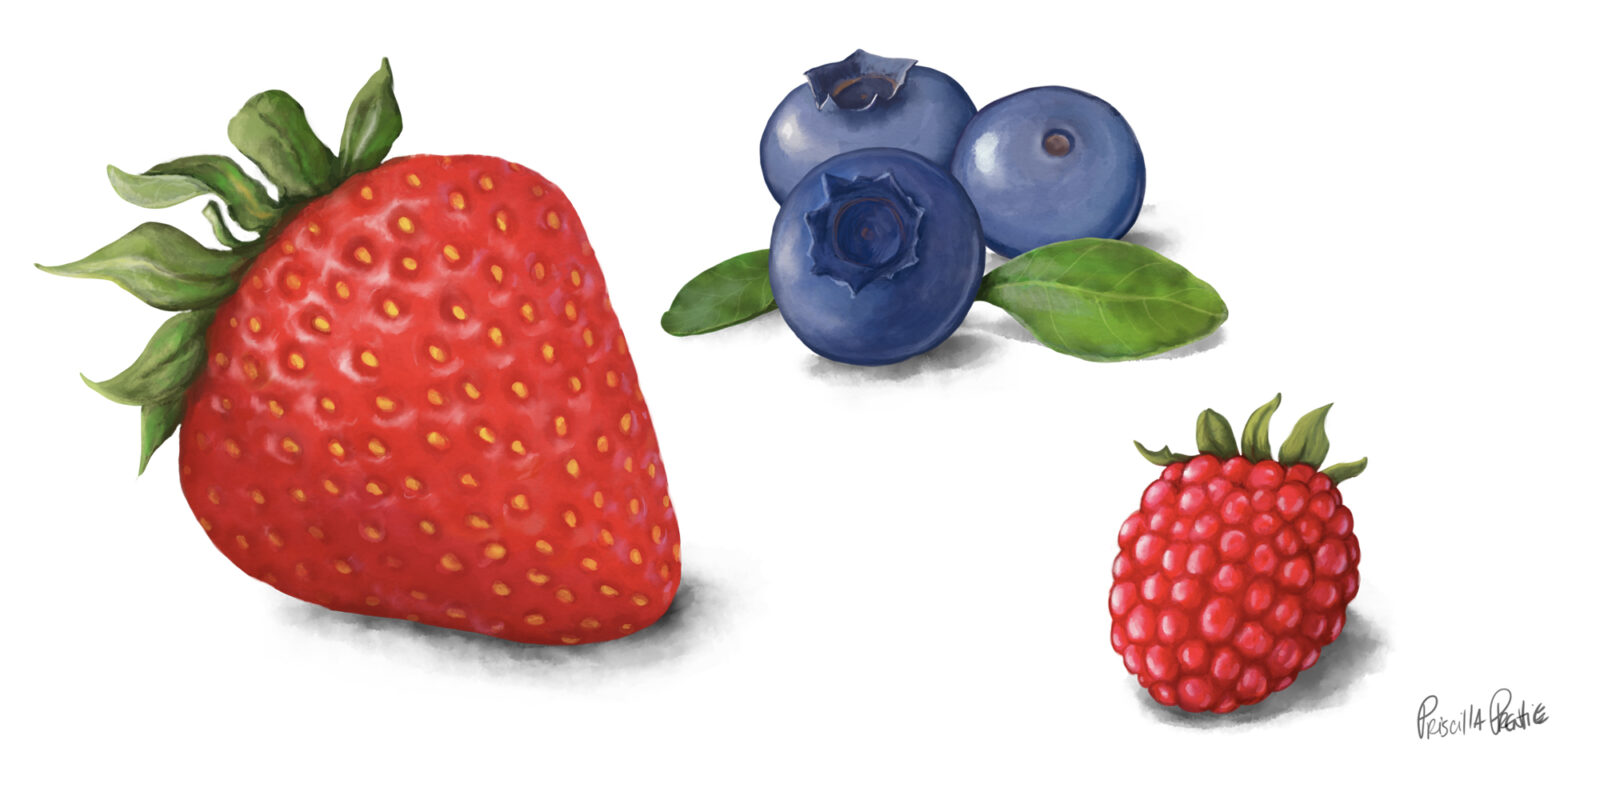 Strawberry, blue berry, and raspberry fruit illustrations